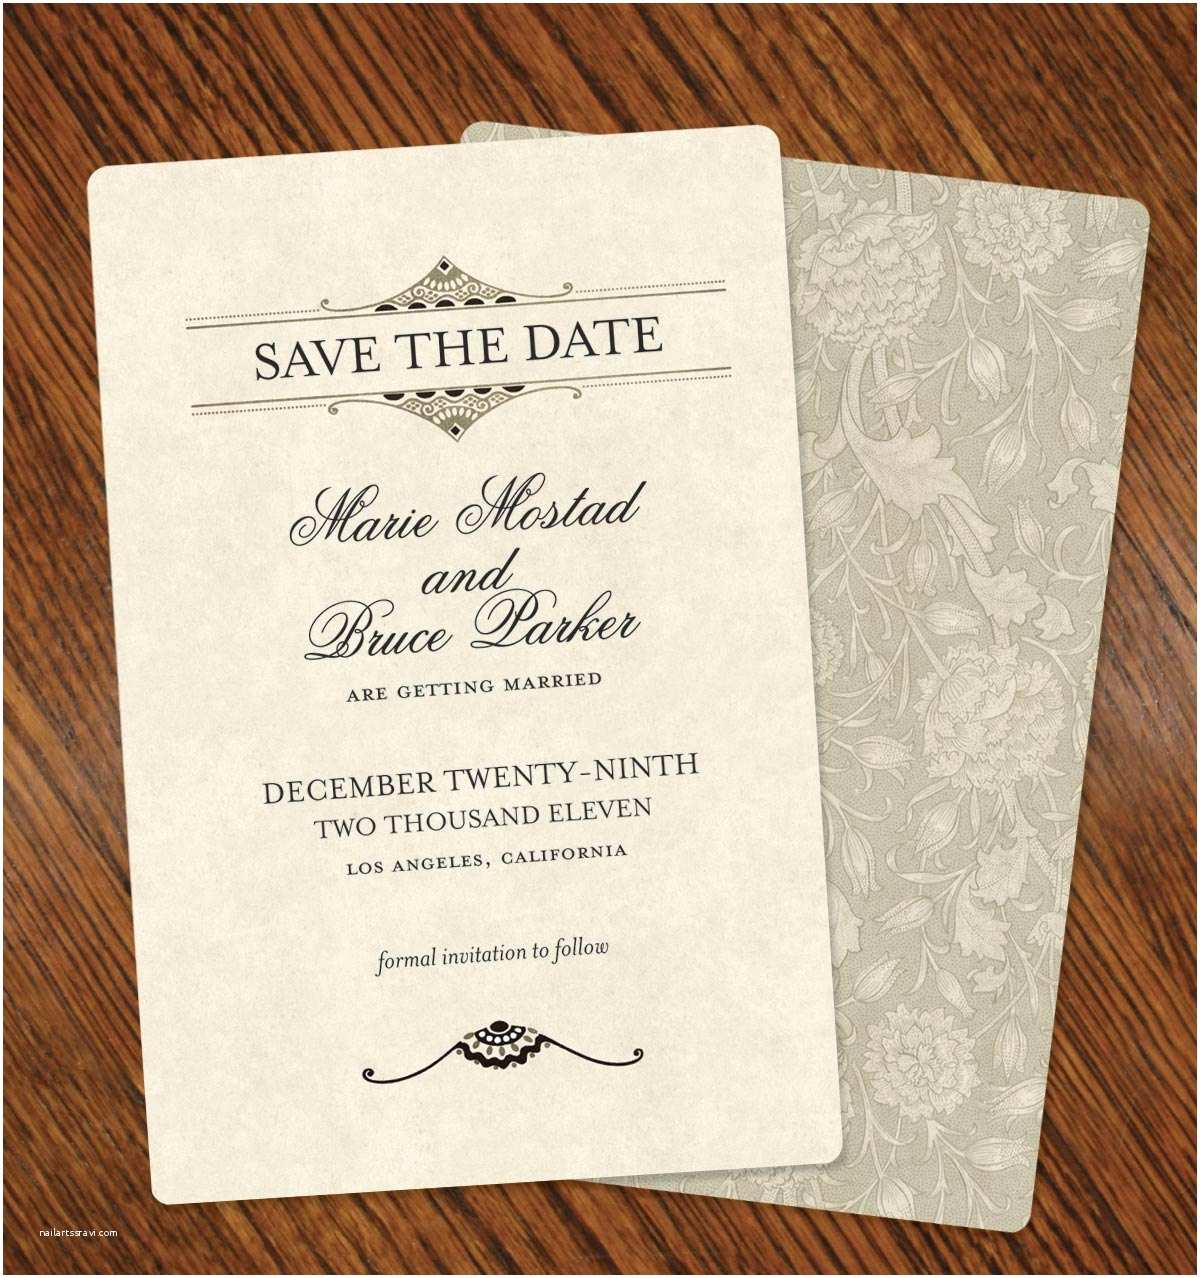 Cheap Wedding Invitations and Save the Dates Packages Simple Save the Date Wedding Invitation Card Ideas with